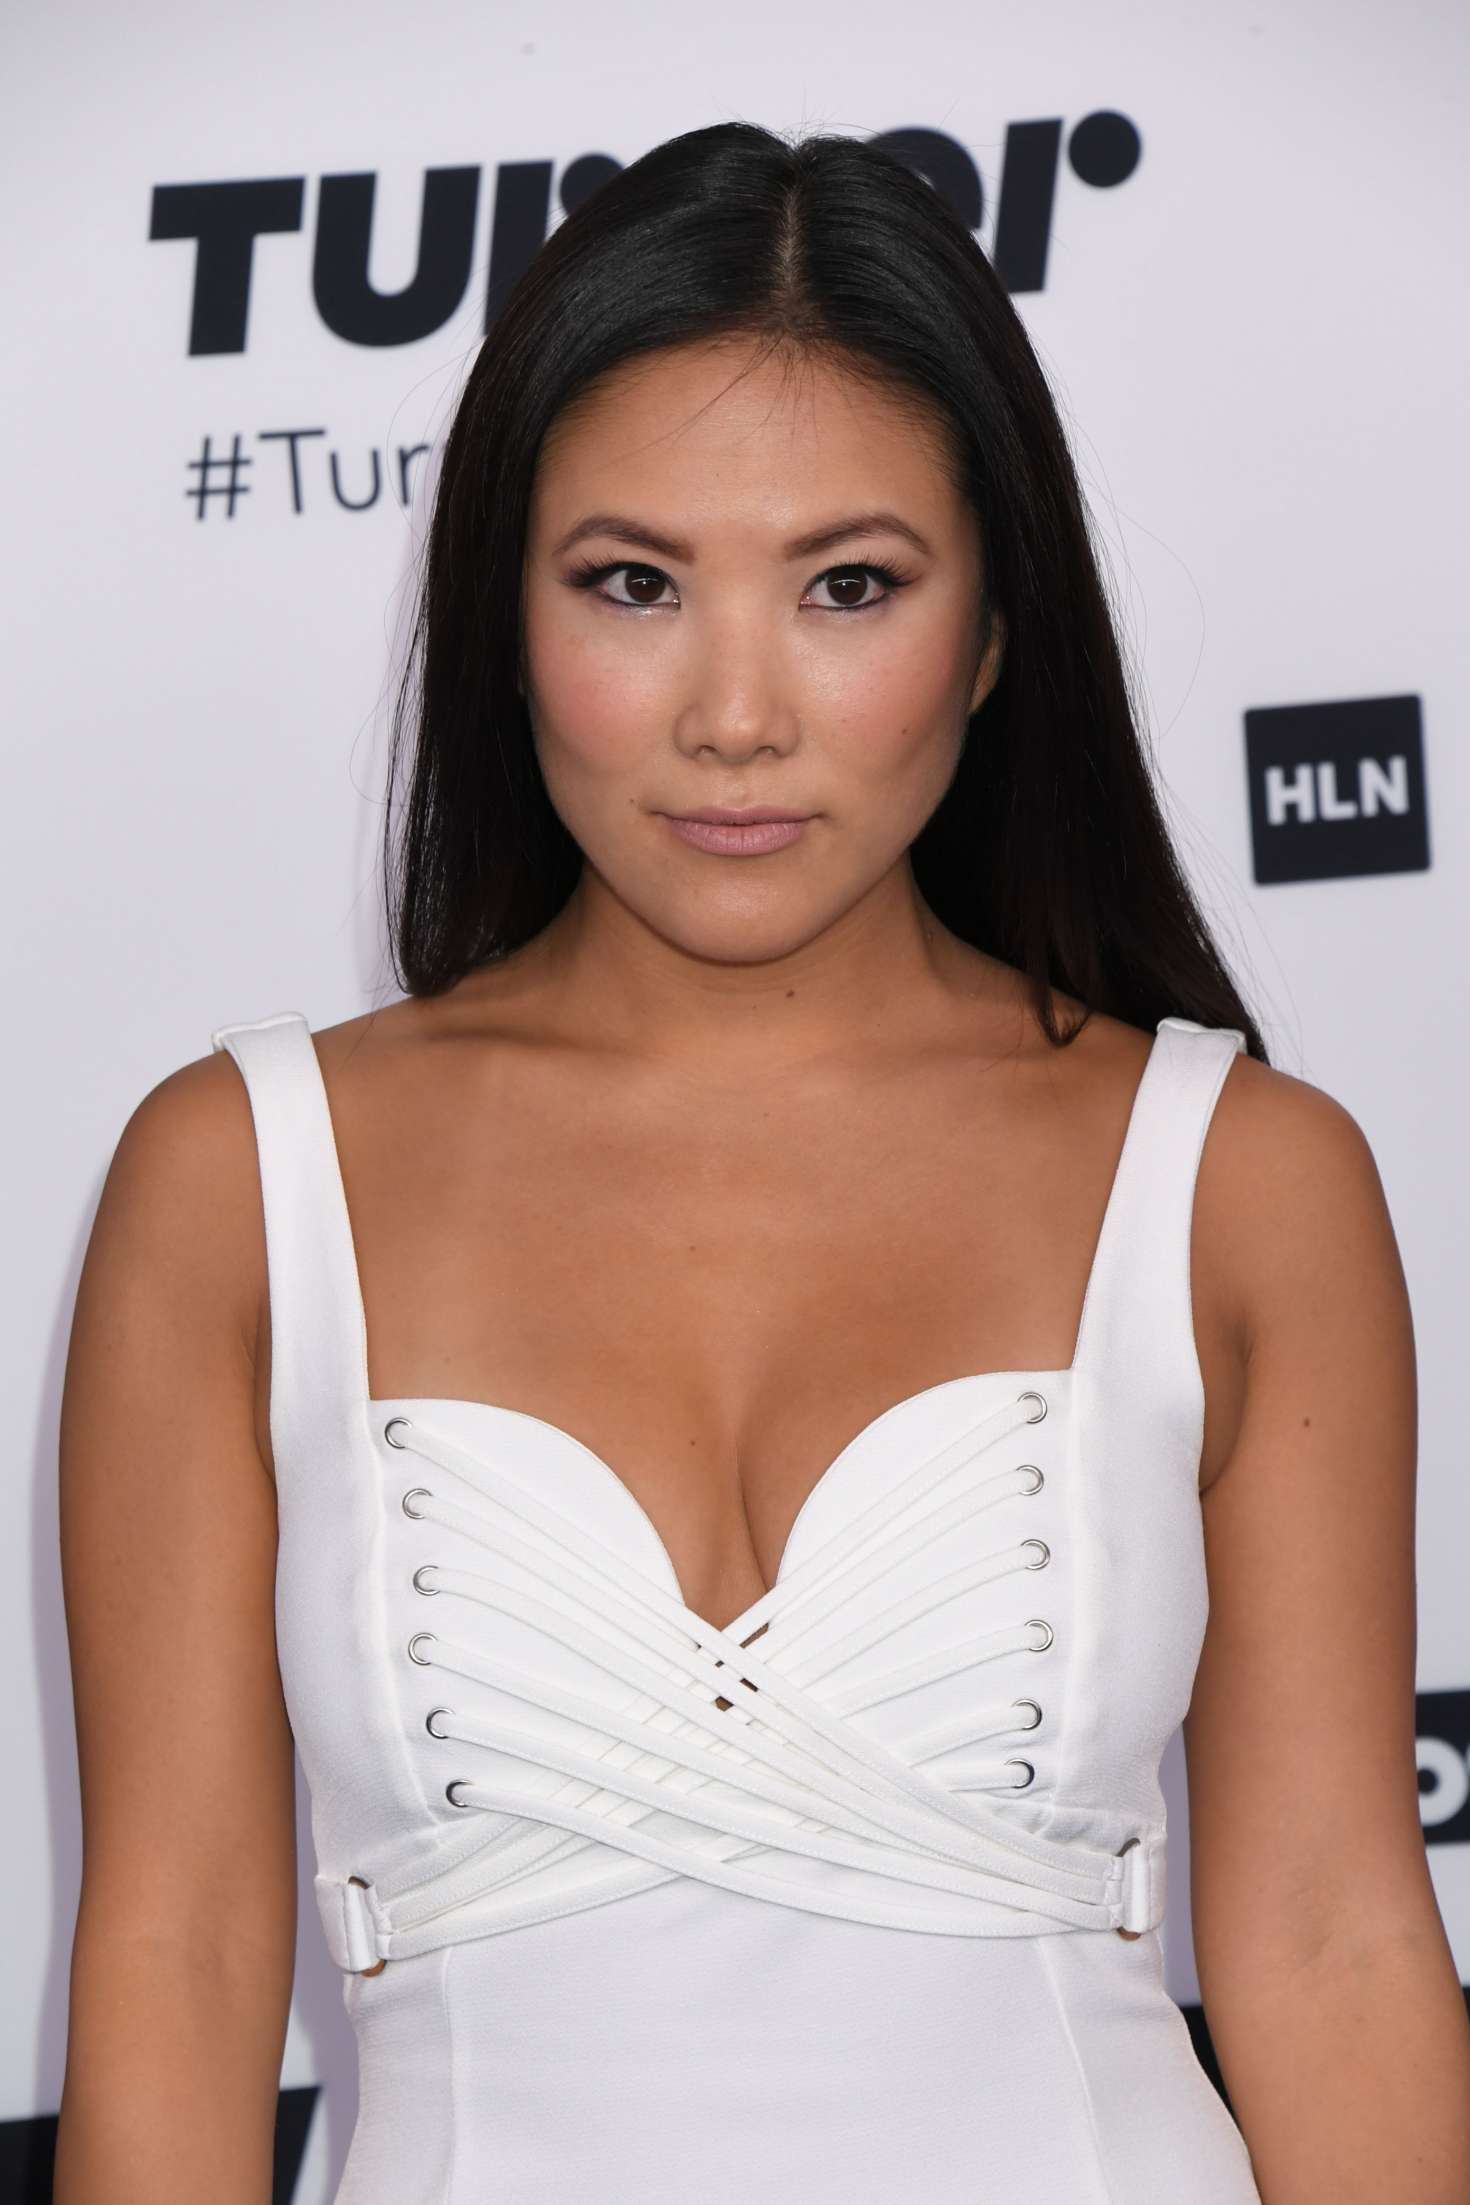 Ally Maki nudes (35 foto and video), Pussy, Is a cute, Boobs, butt 2006